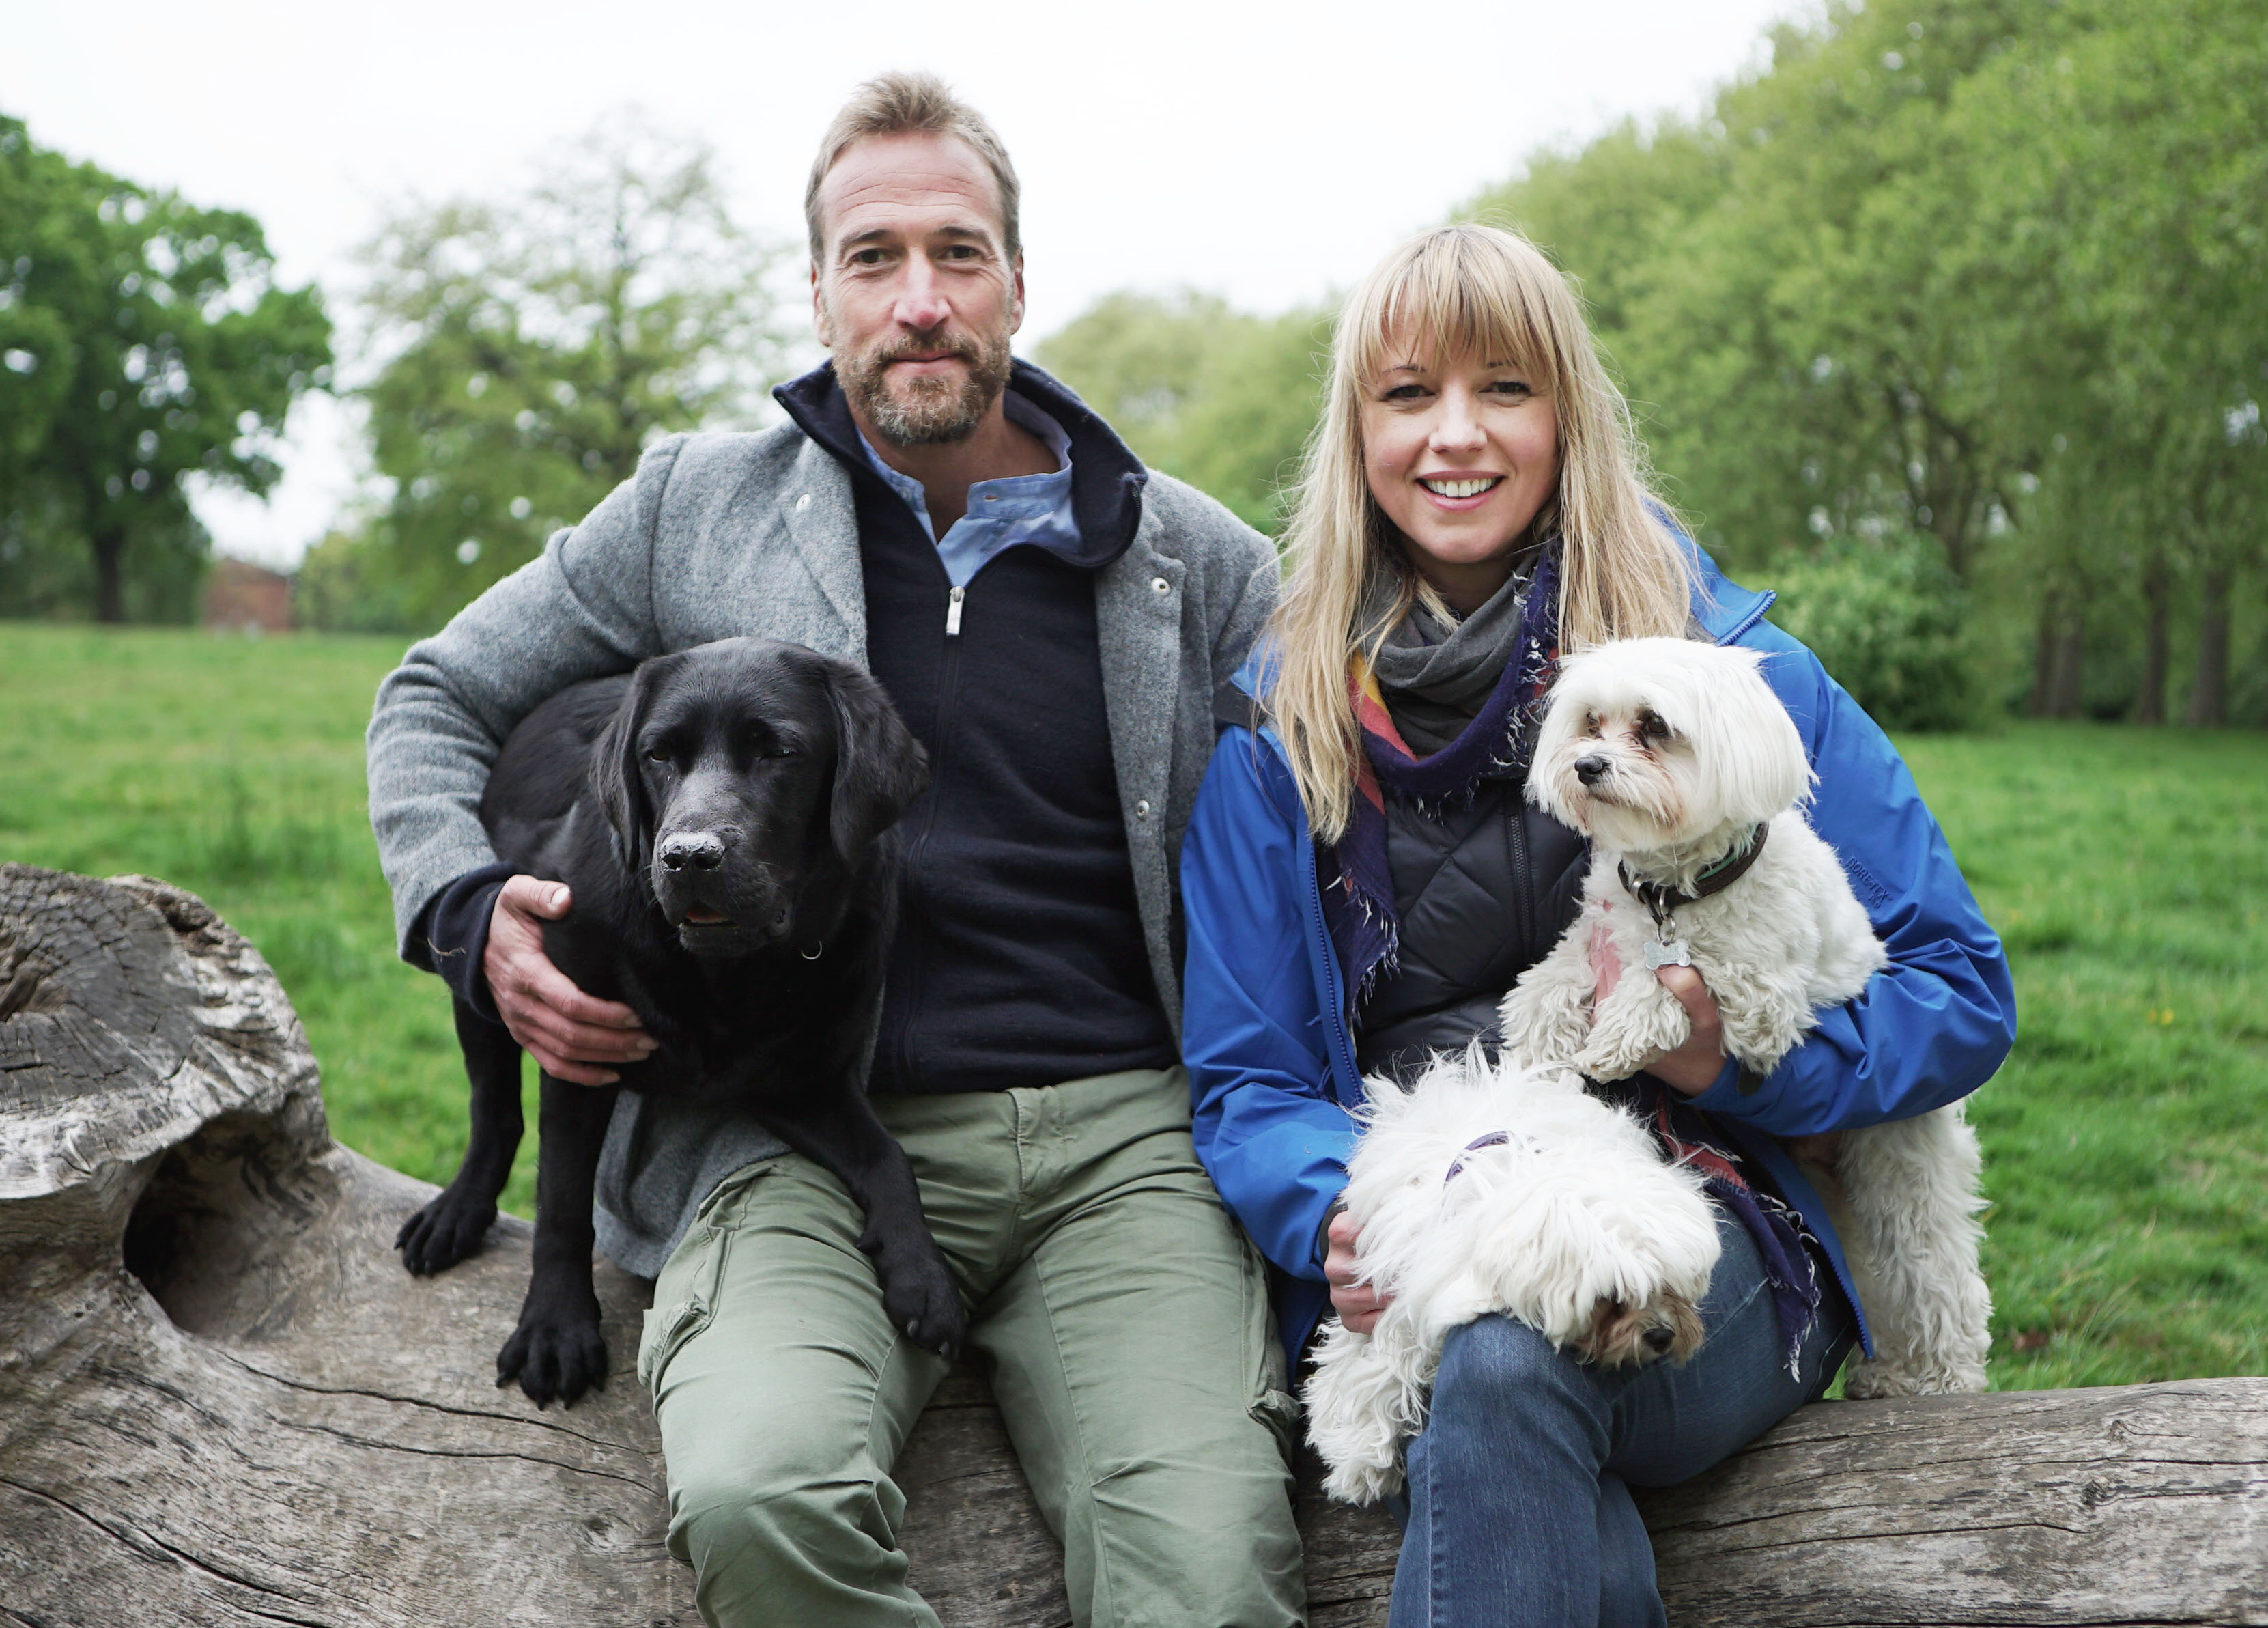 From Ricochet Productions